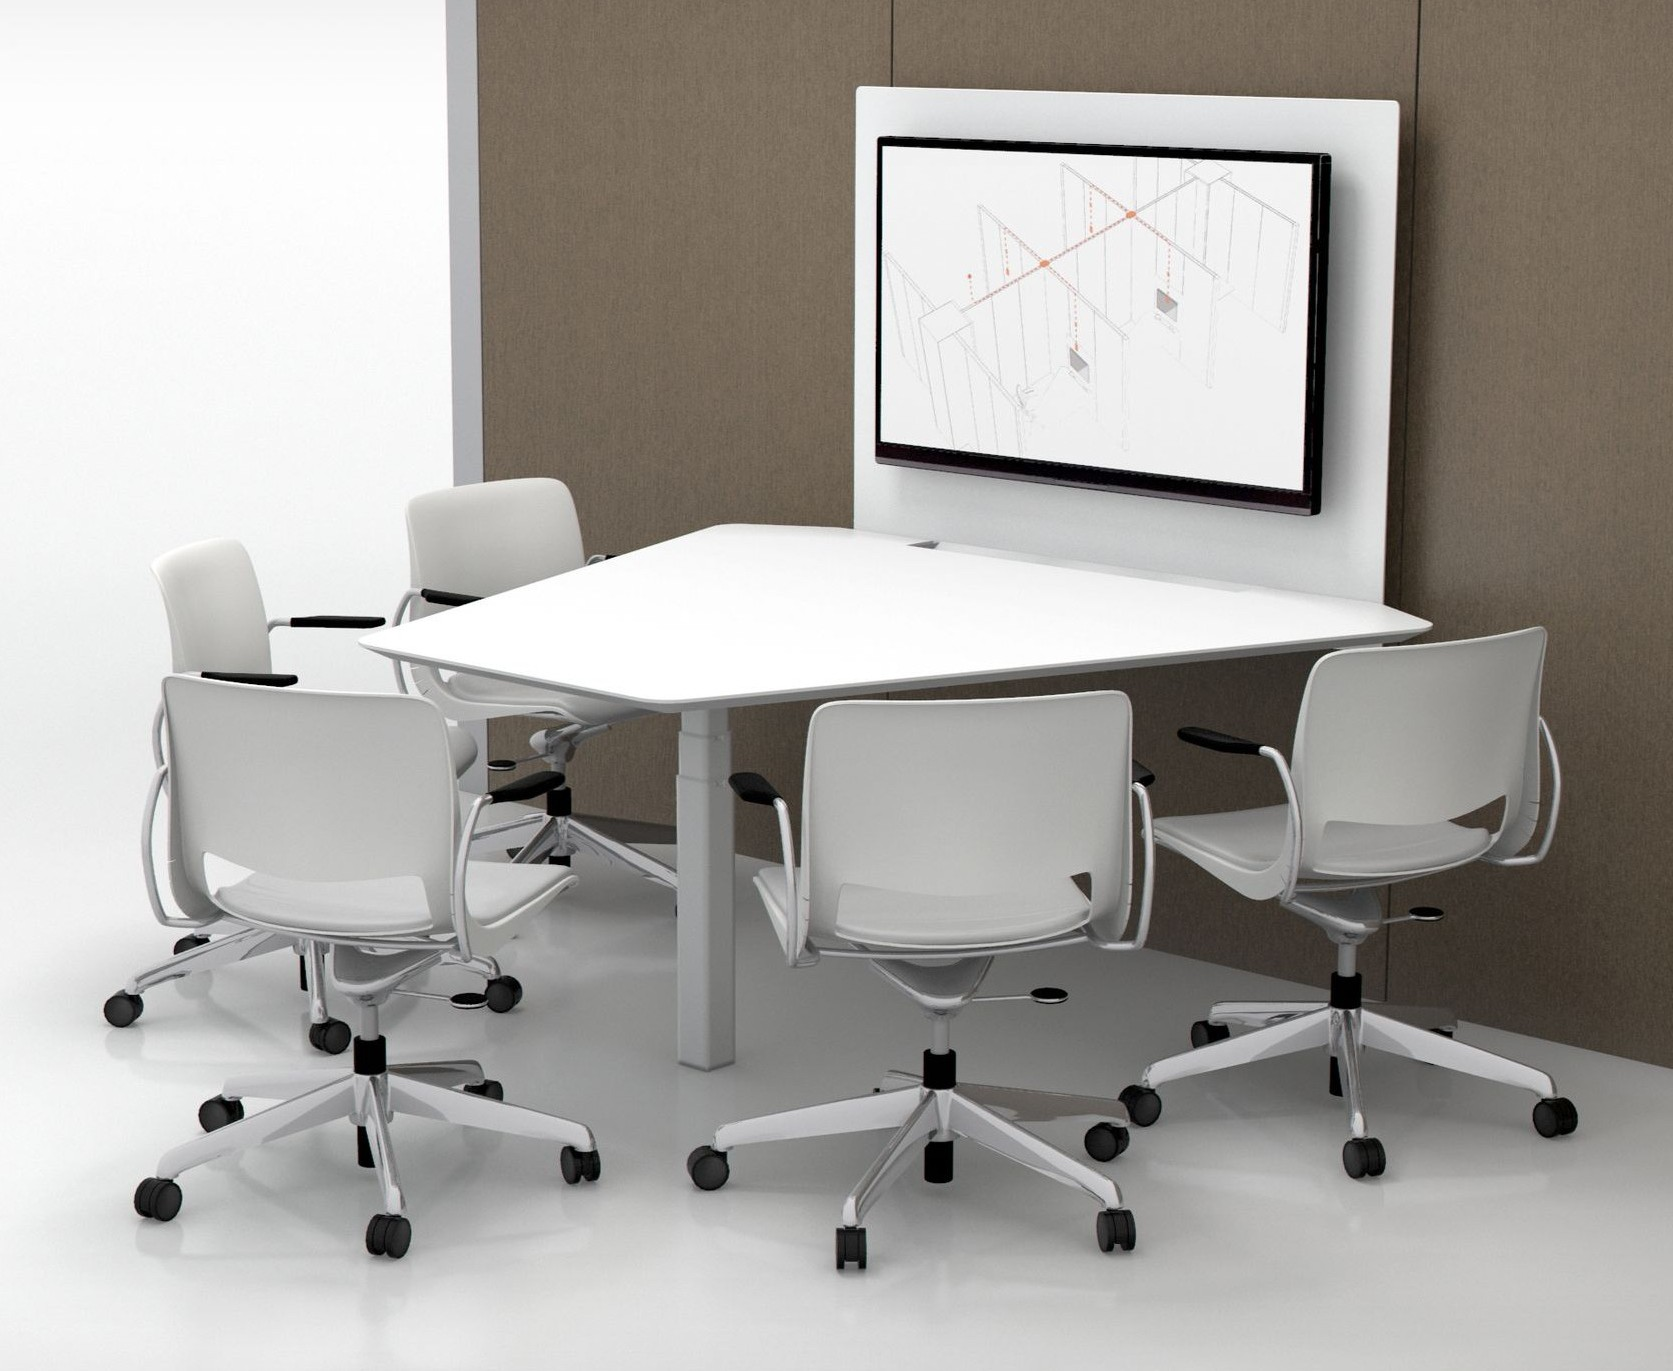 NeoCon 2016 Teknion39s Tek Pier height adjustable worksurface